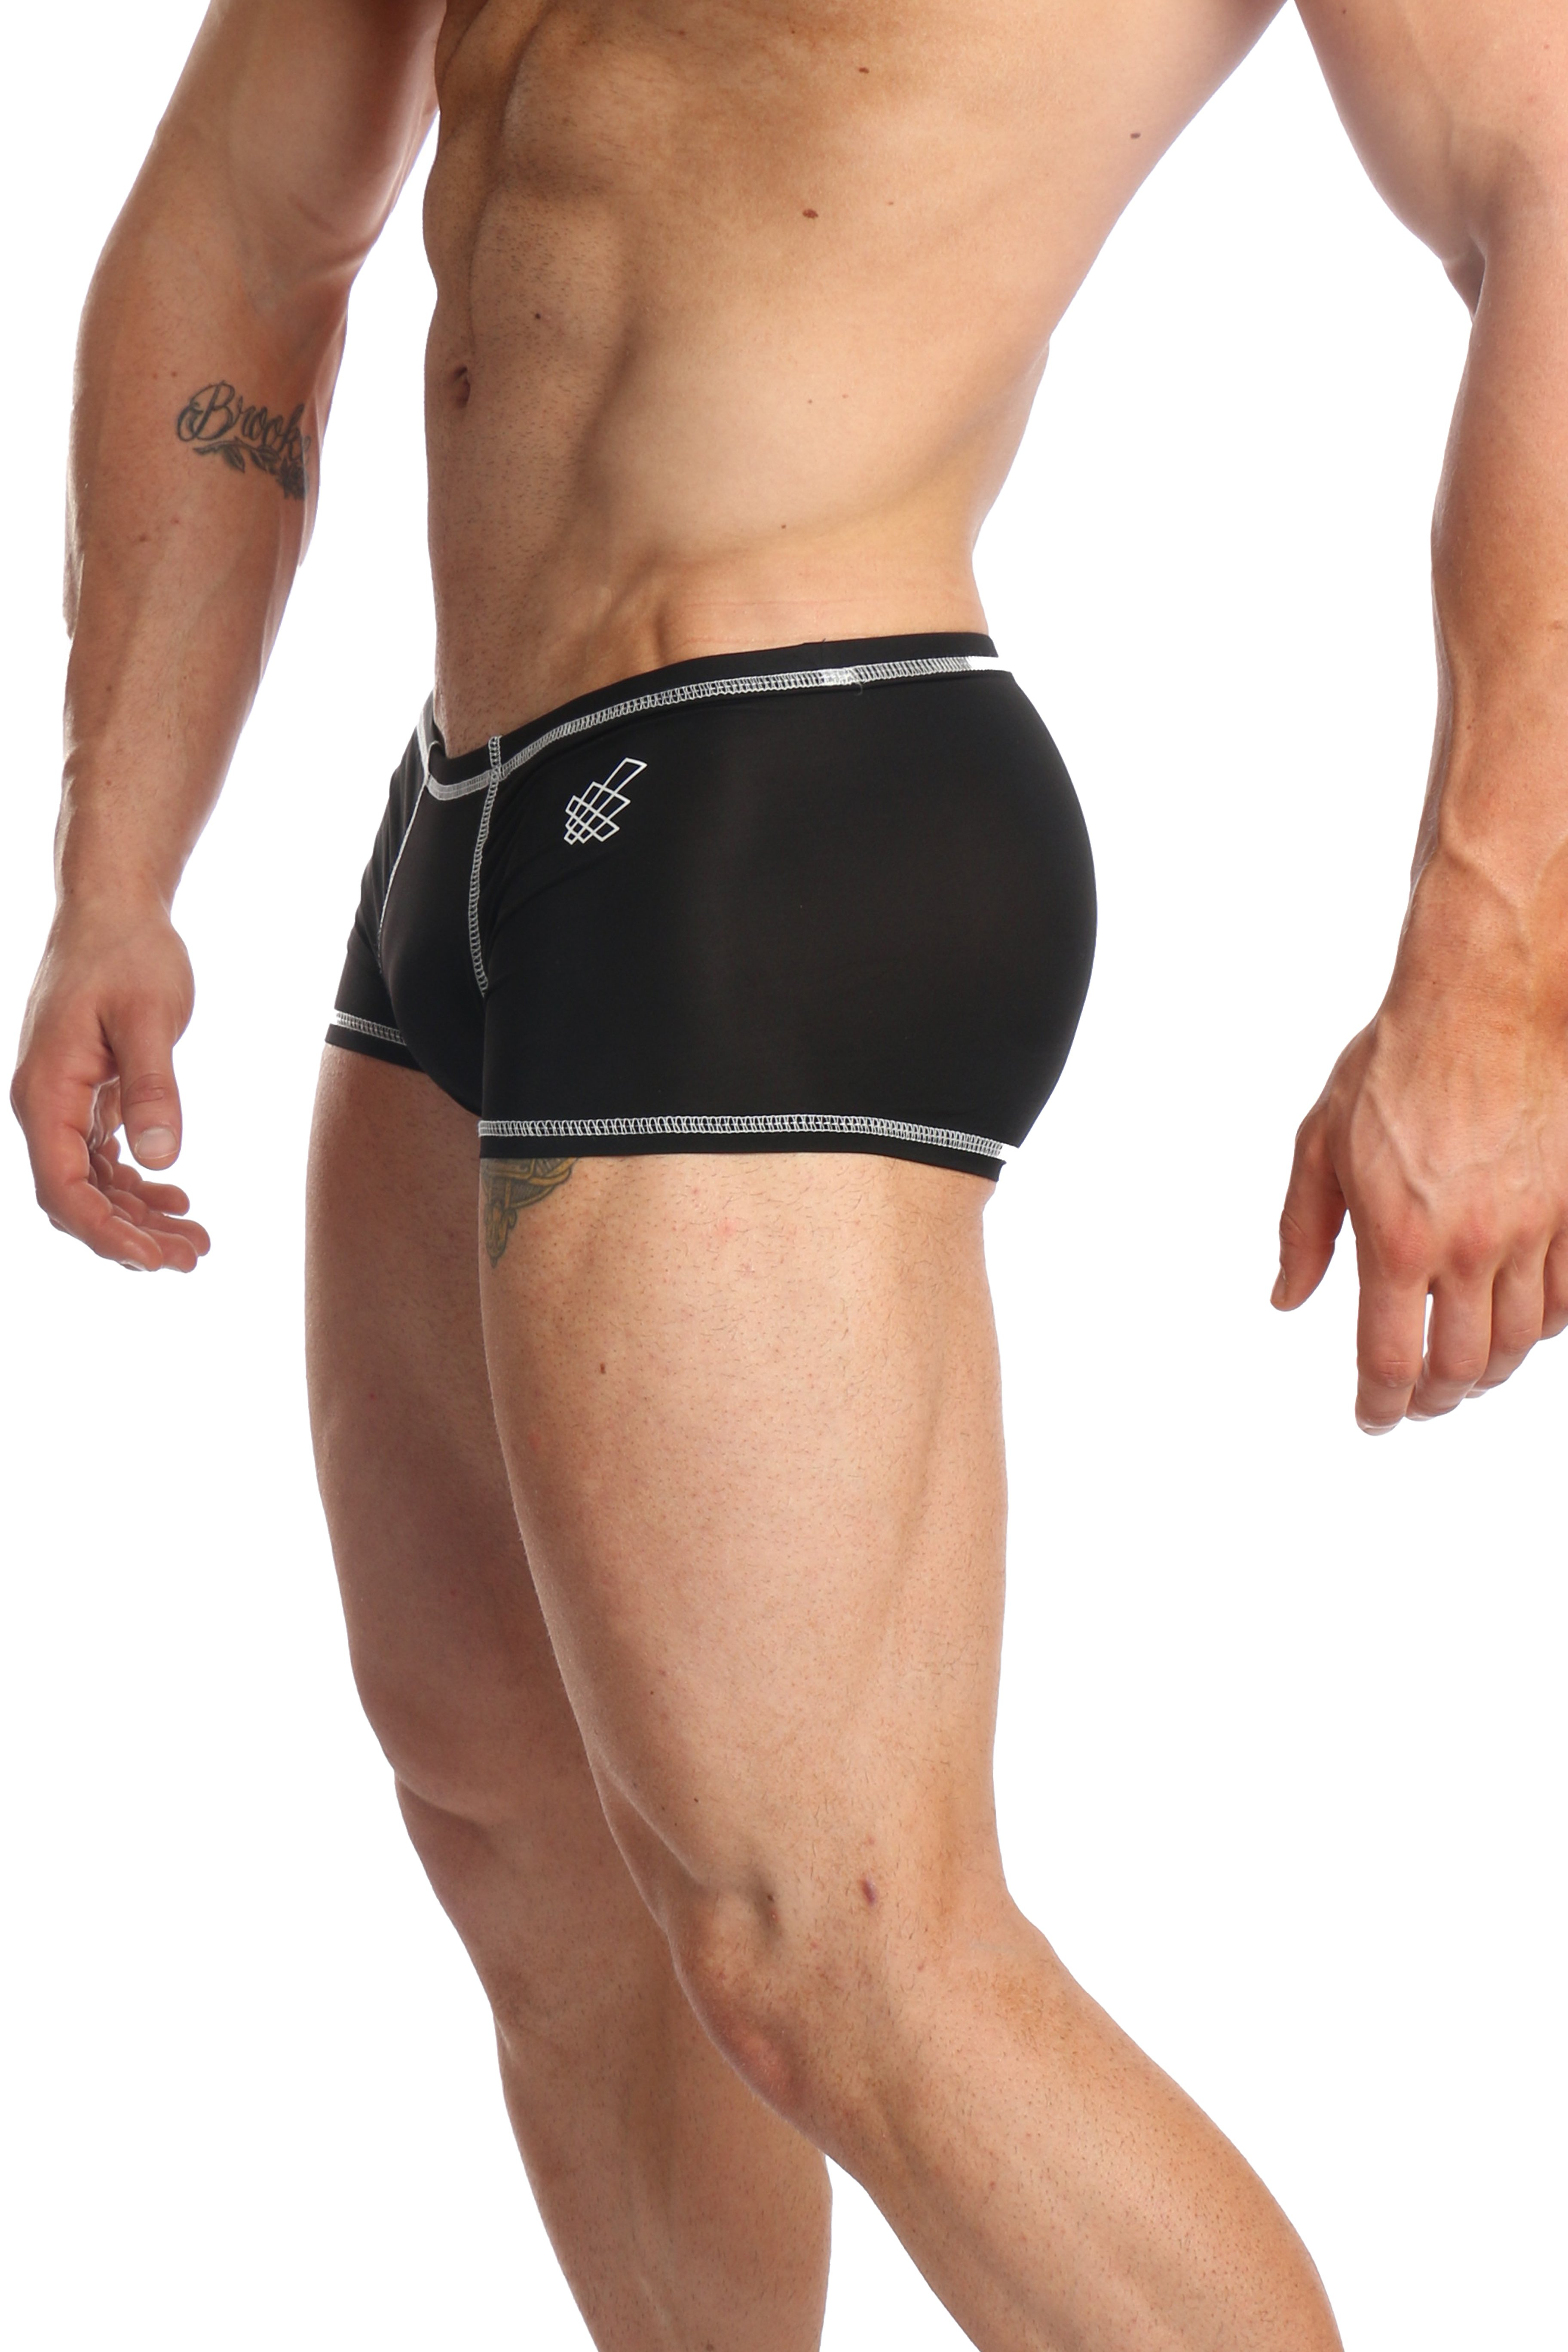 fb0f34590e37 The super-light, smooth, next-to-skin men's workout performance underwear  by Jed North. 4-way stretch fabrication allows greater mobility in any  direction, ...